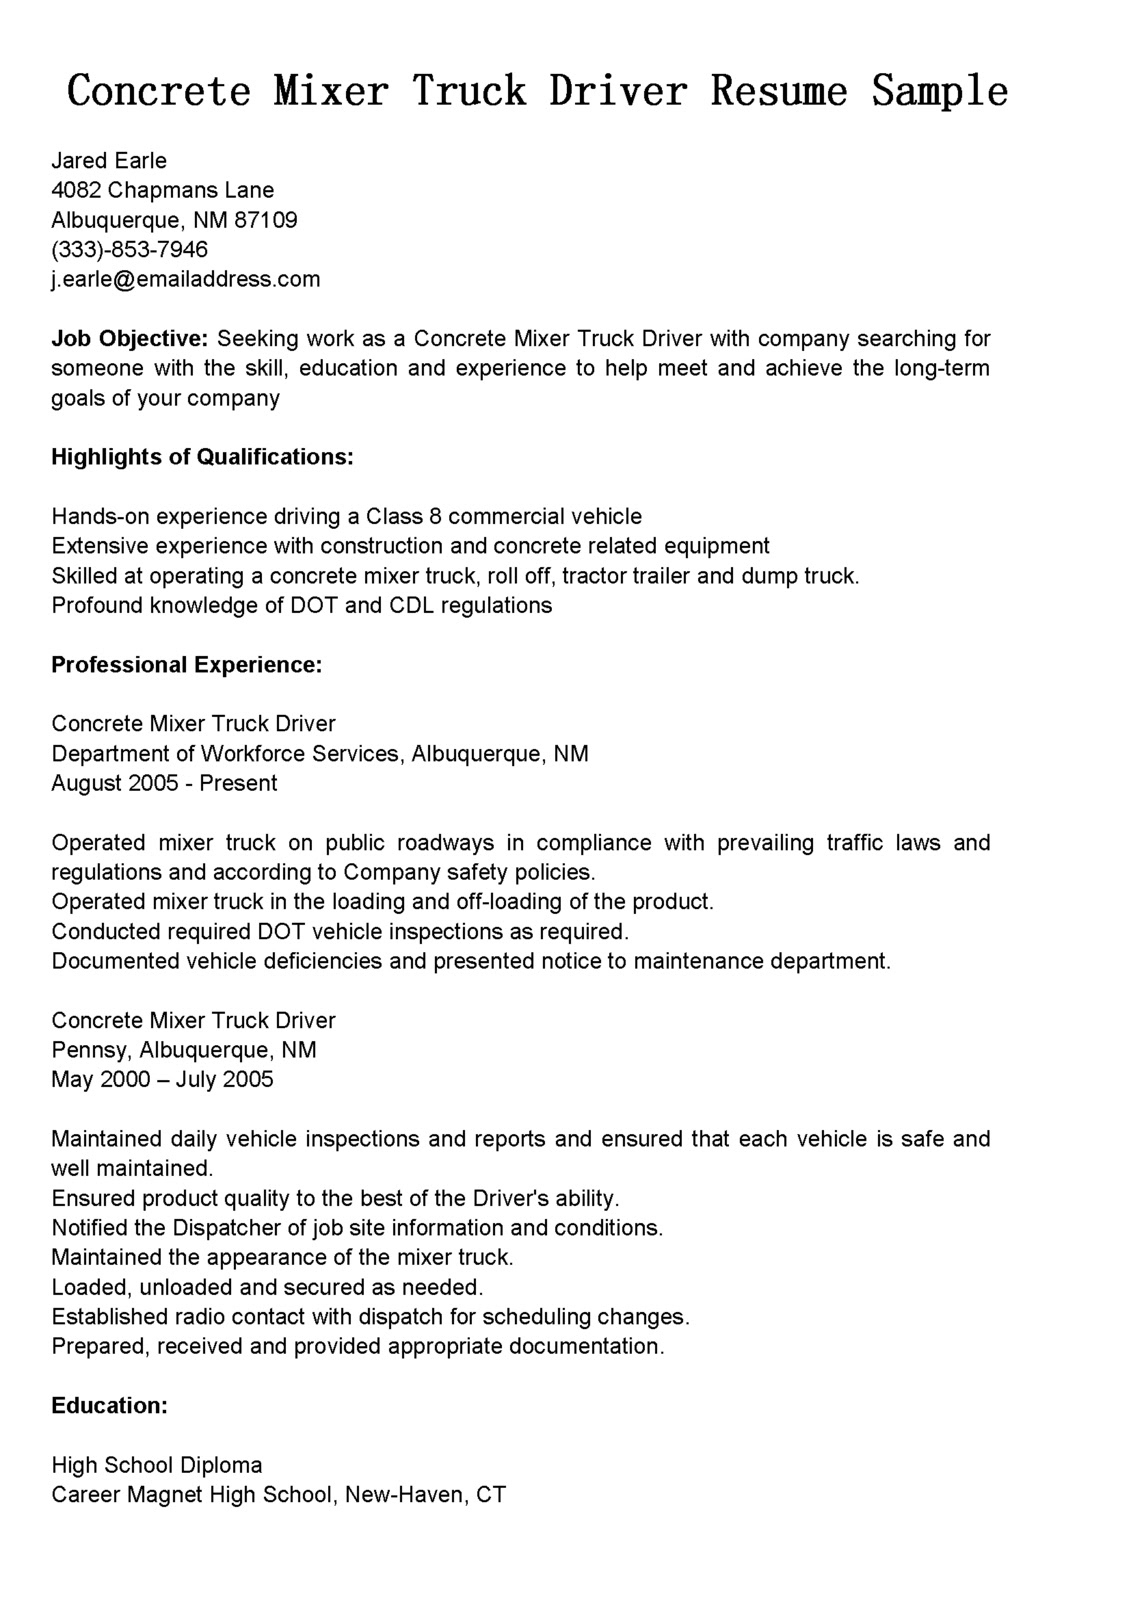 14 cdl truck driver resume samples